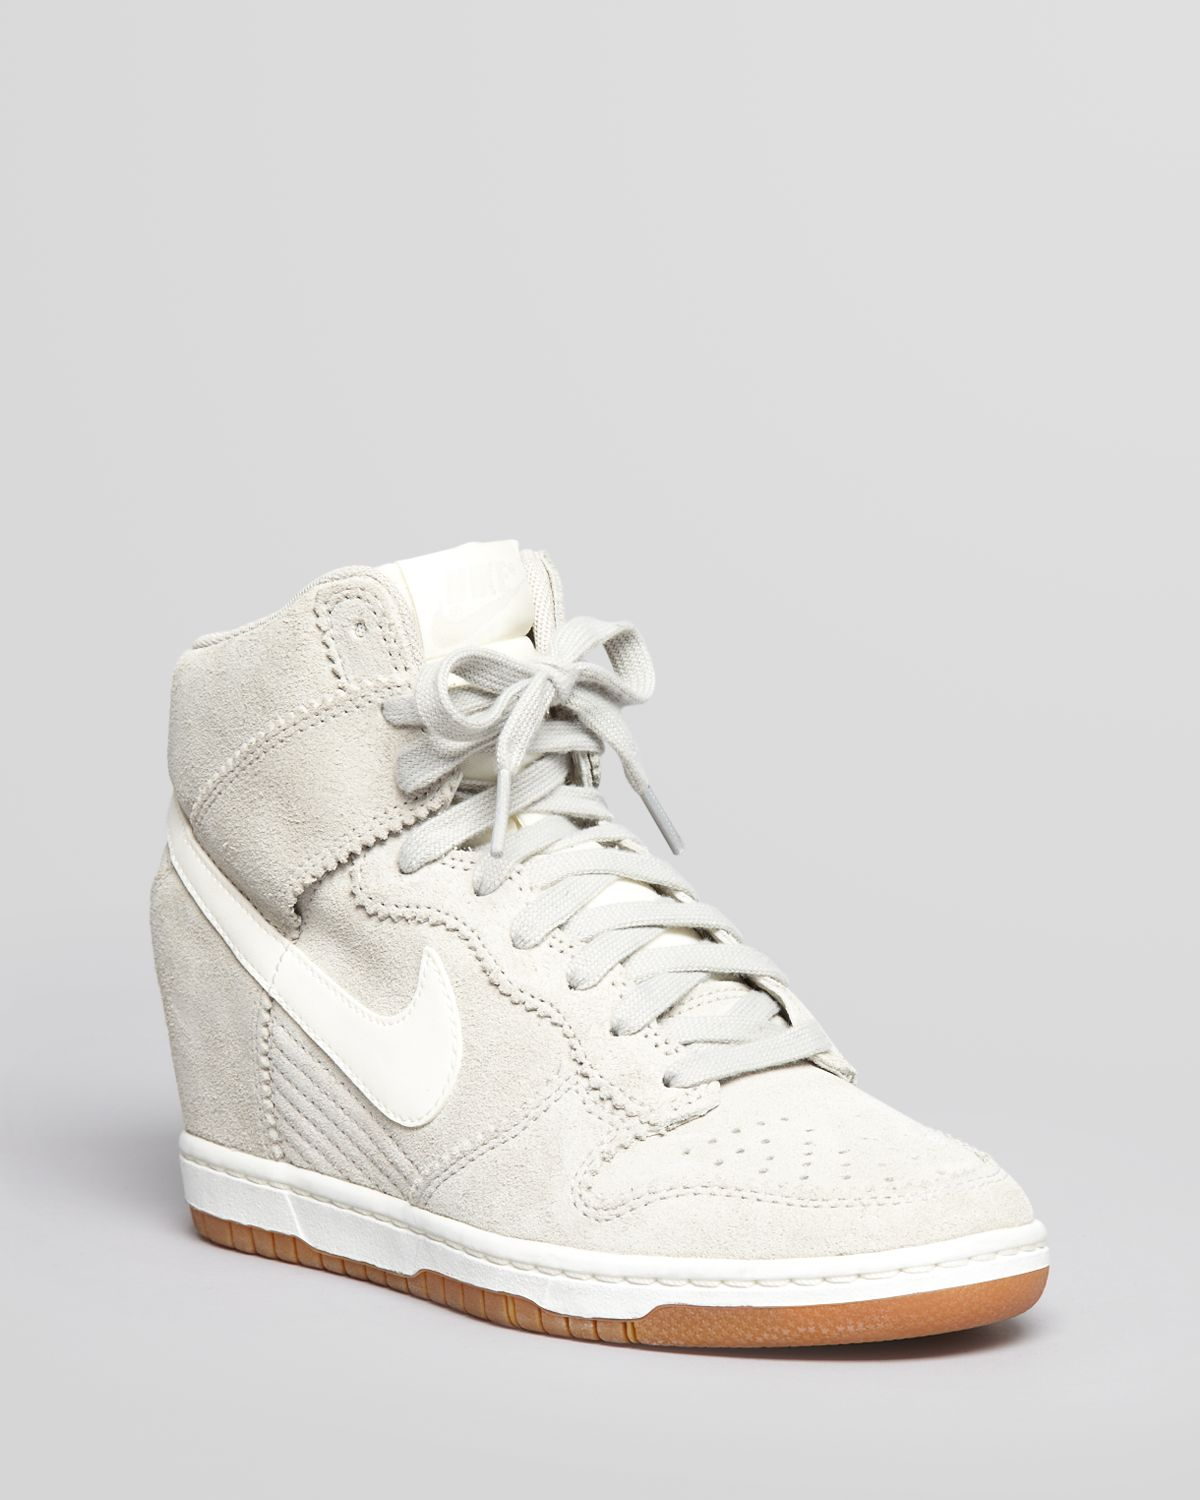 1ee3f32af0f ... buy gallery. previously sold at bloomingdales womens wedge sneakers  womens nike dunk womens nike dunk